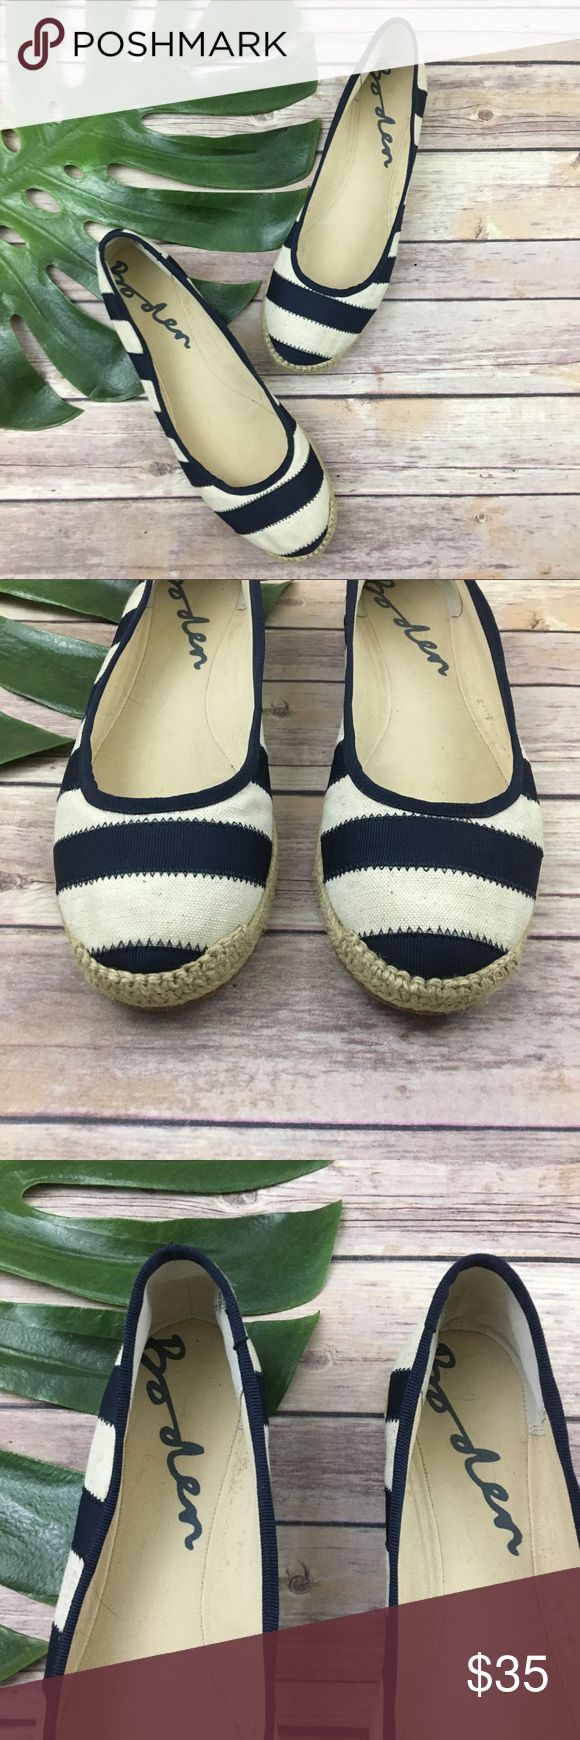 Boden blue & white stripe ballet flats Boden blue & white stripe espadrille slip on flats, size 41 (10). They are free from any rips or stains. Boden Shoes Flats & Loafers